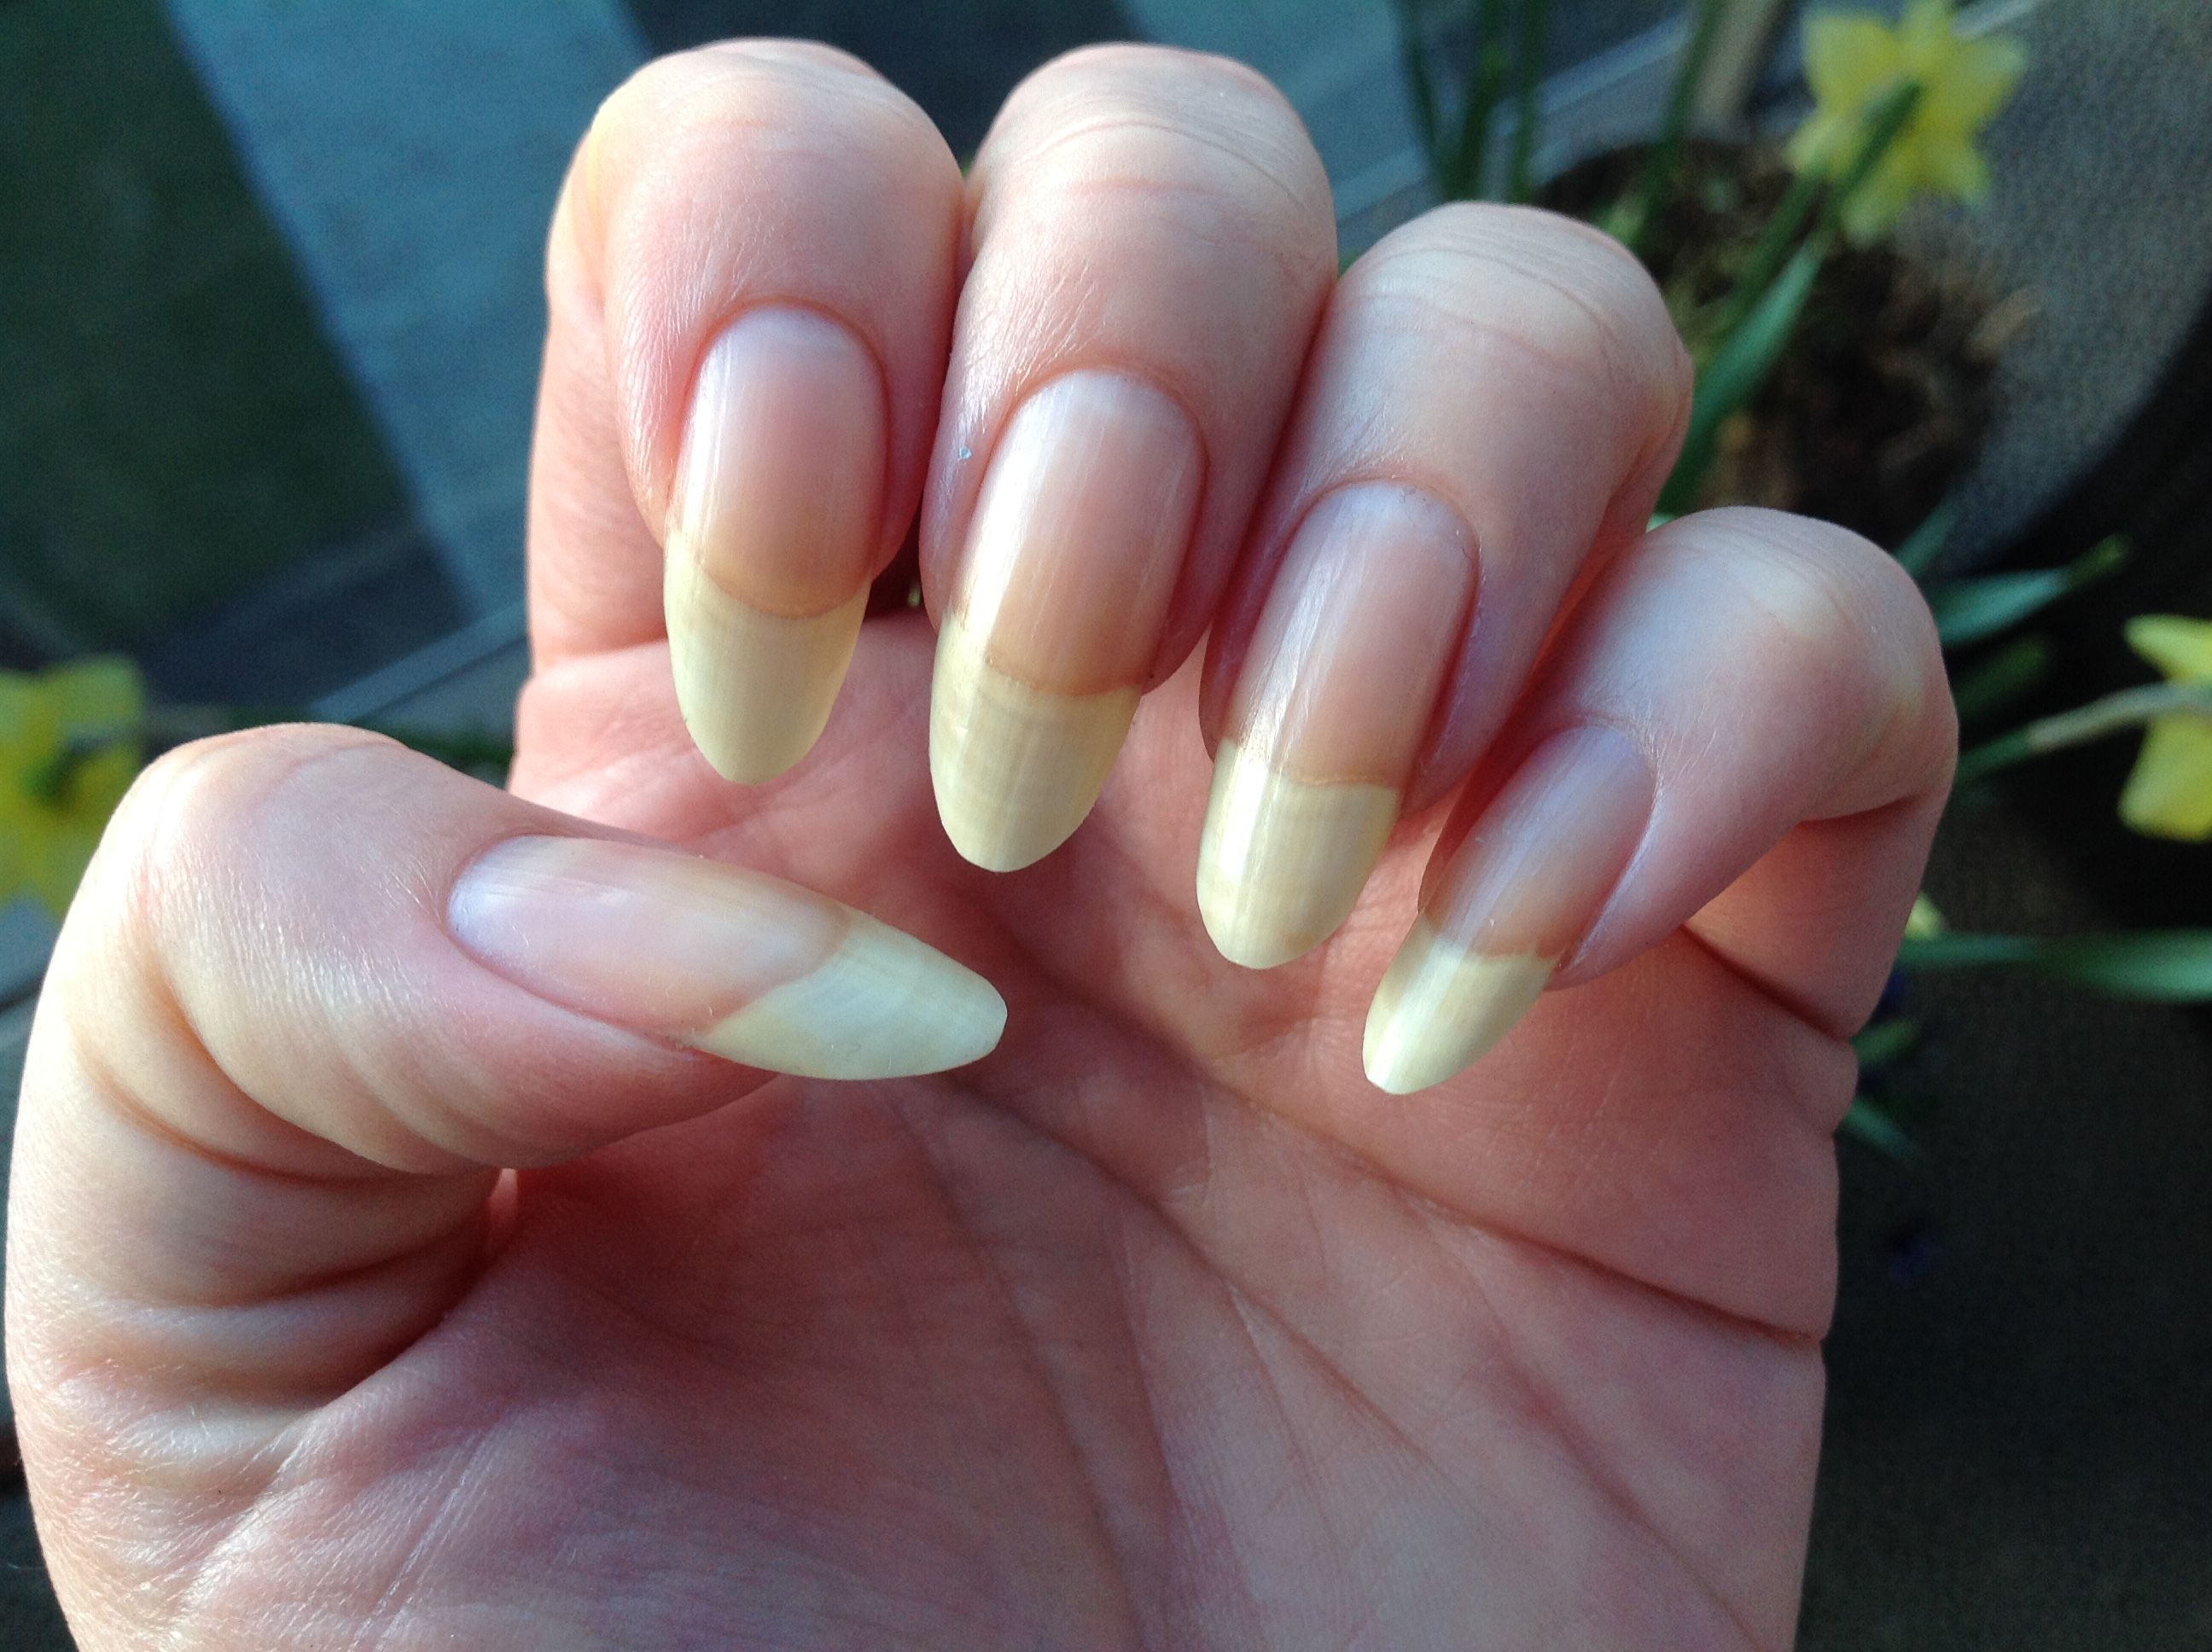 Pin by Sofie on Long beautiful nails | Pinterest | Natural nails ...